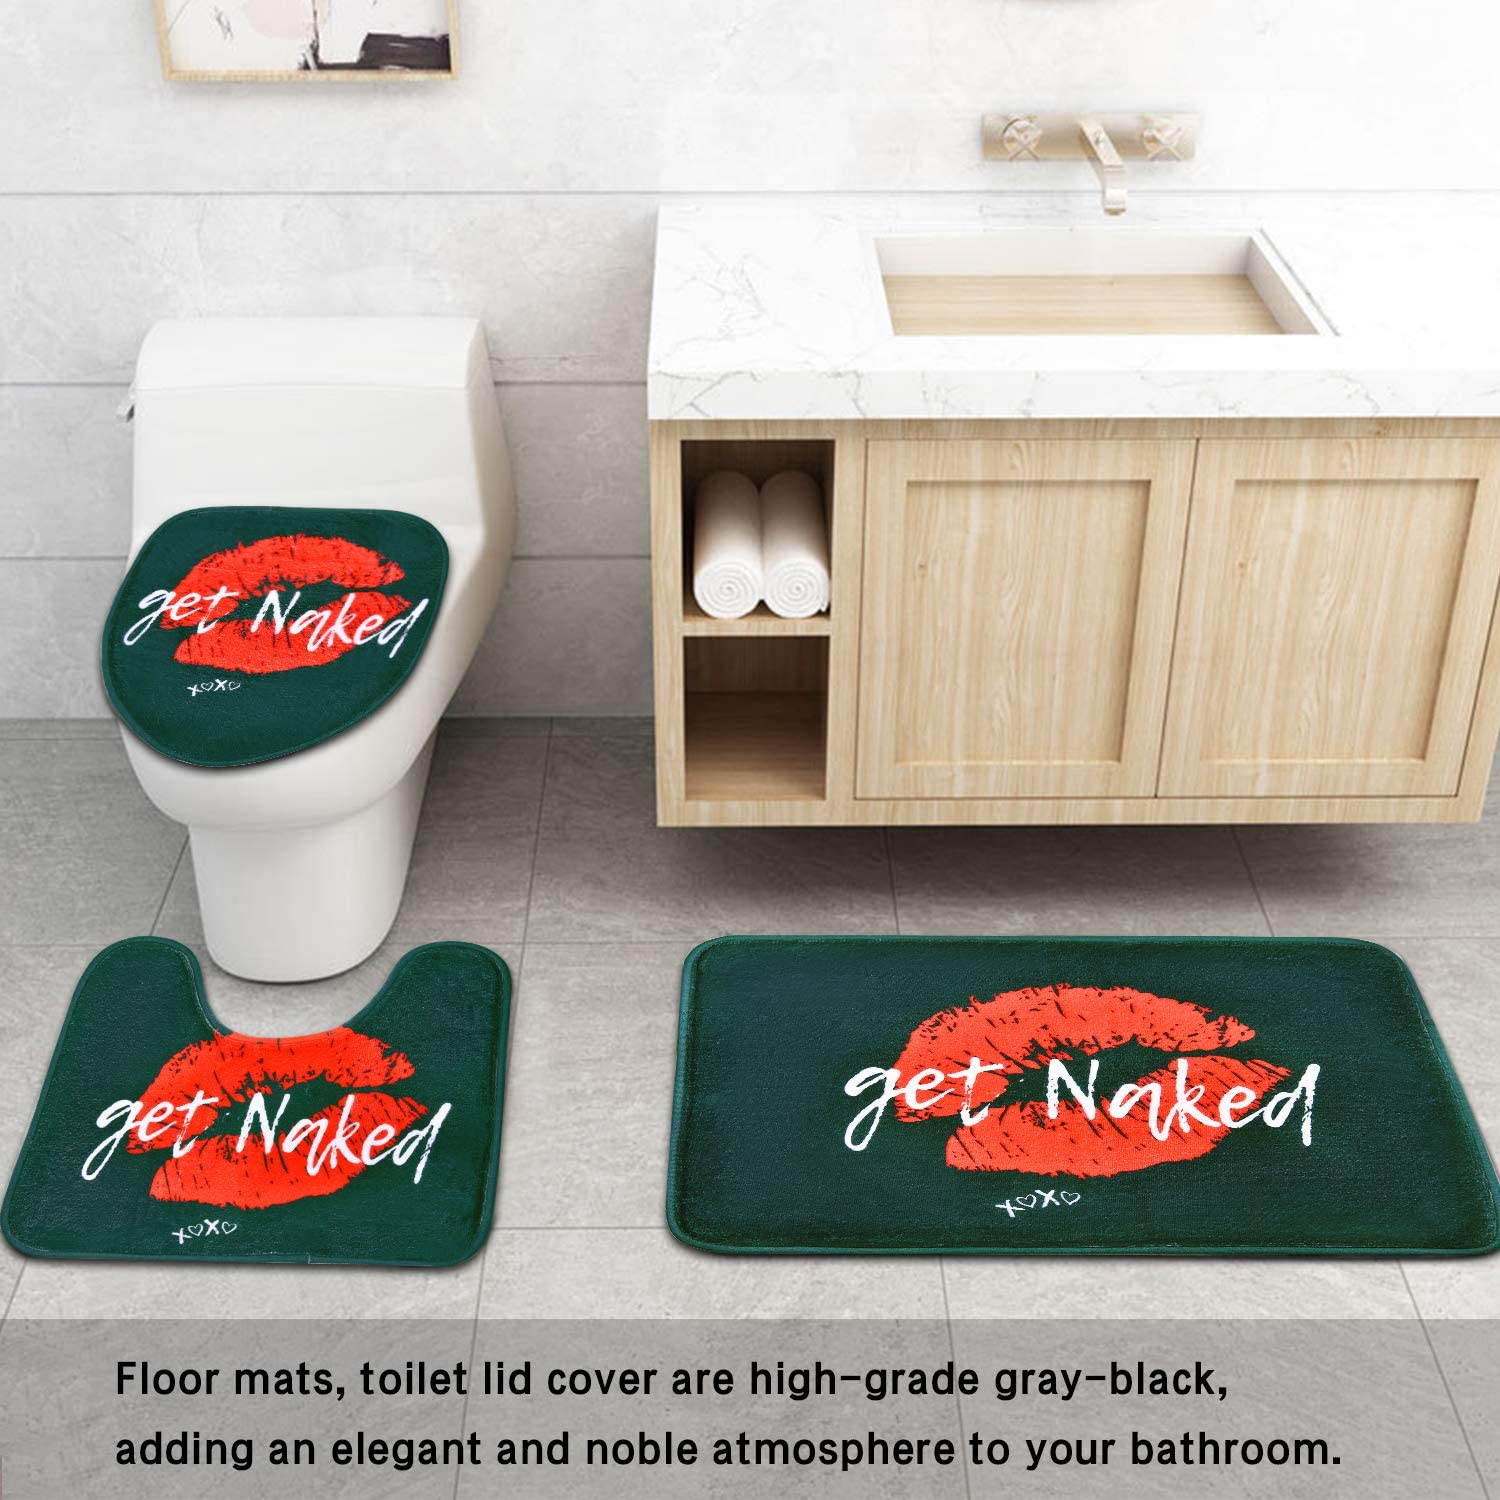 Just Get Naked Toilet Lid Cover /& Bath Mat Funny Shower Curtain Sets 4pcs